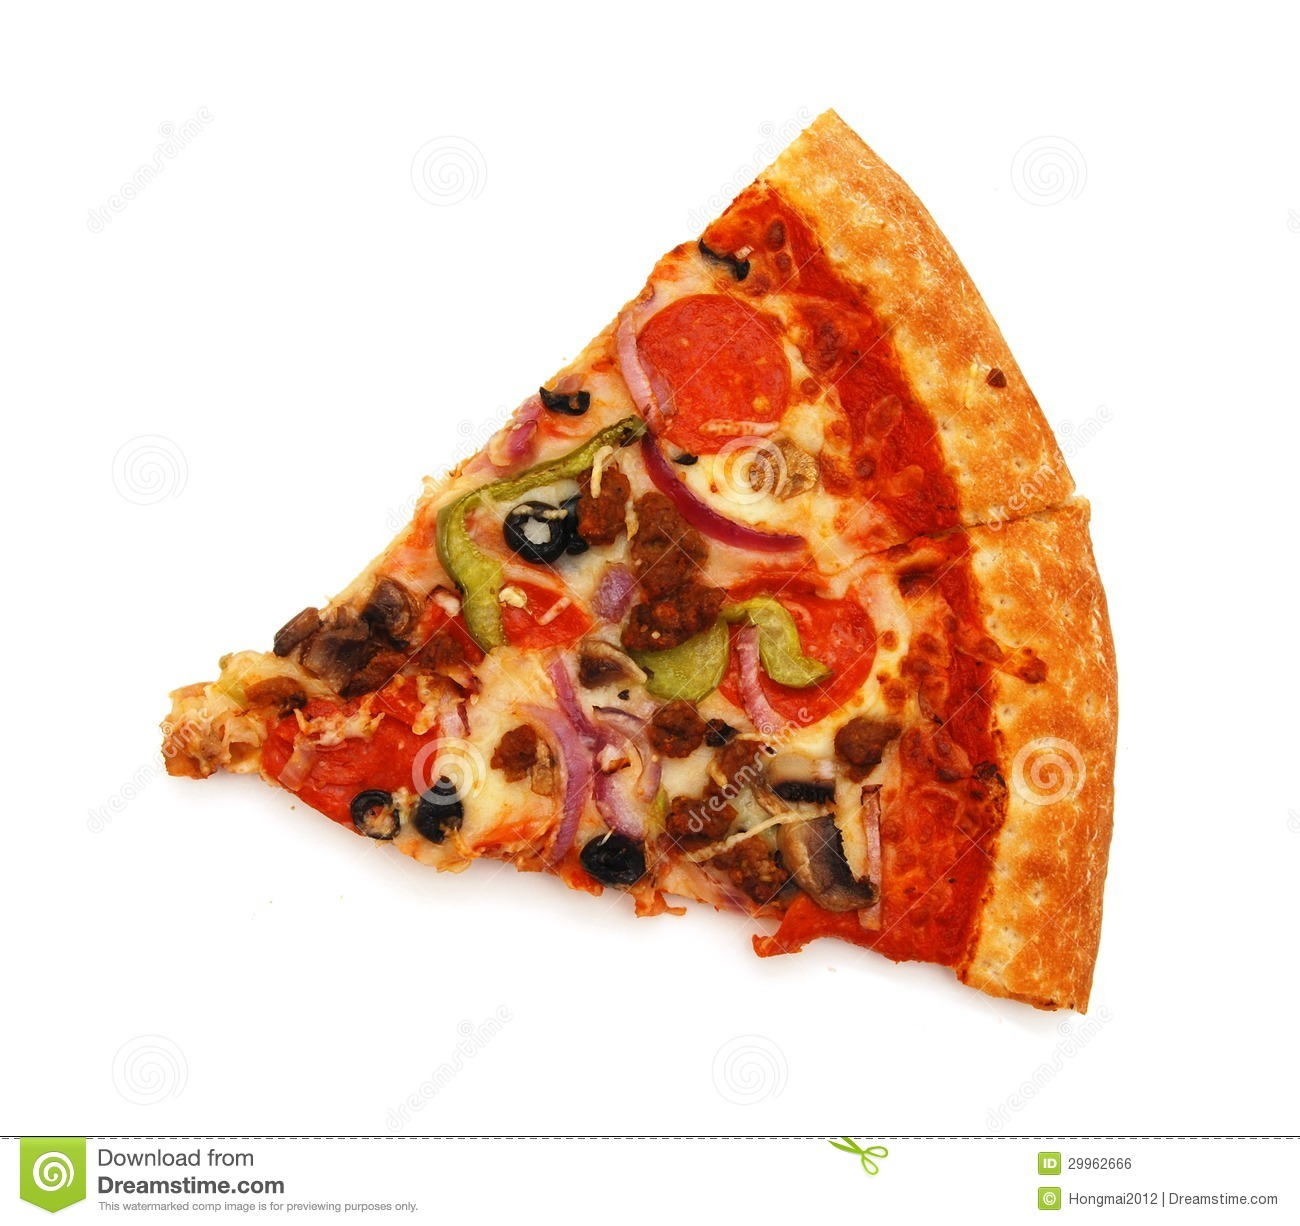 Cut Off Slice Pizza Royalty Free Stock Image - Image: 29962666